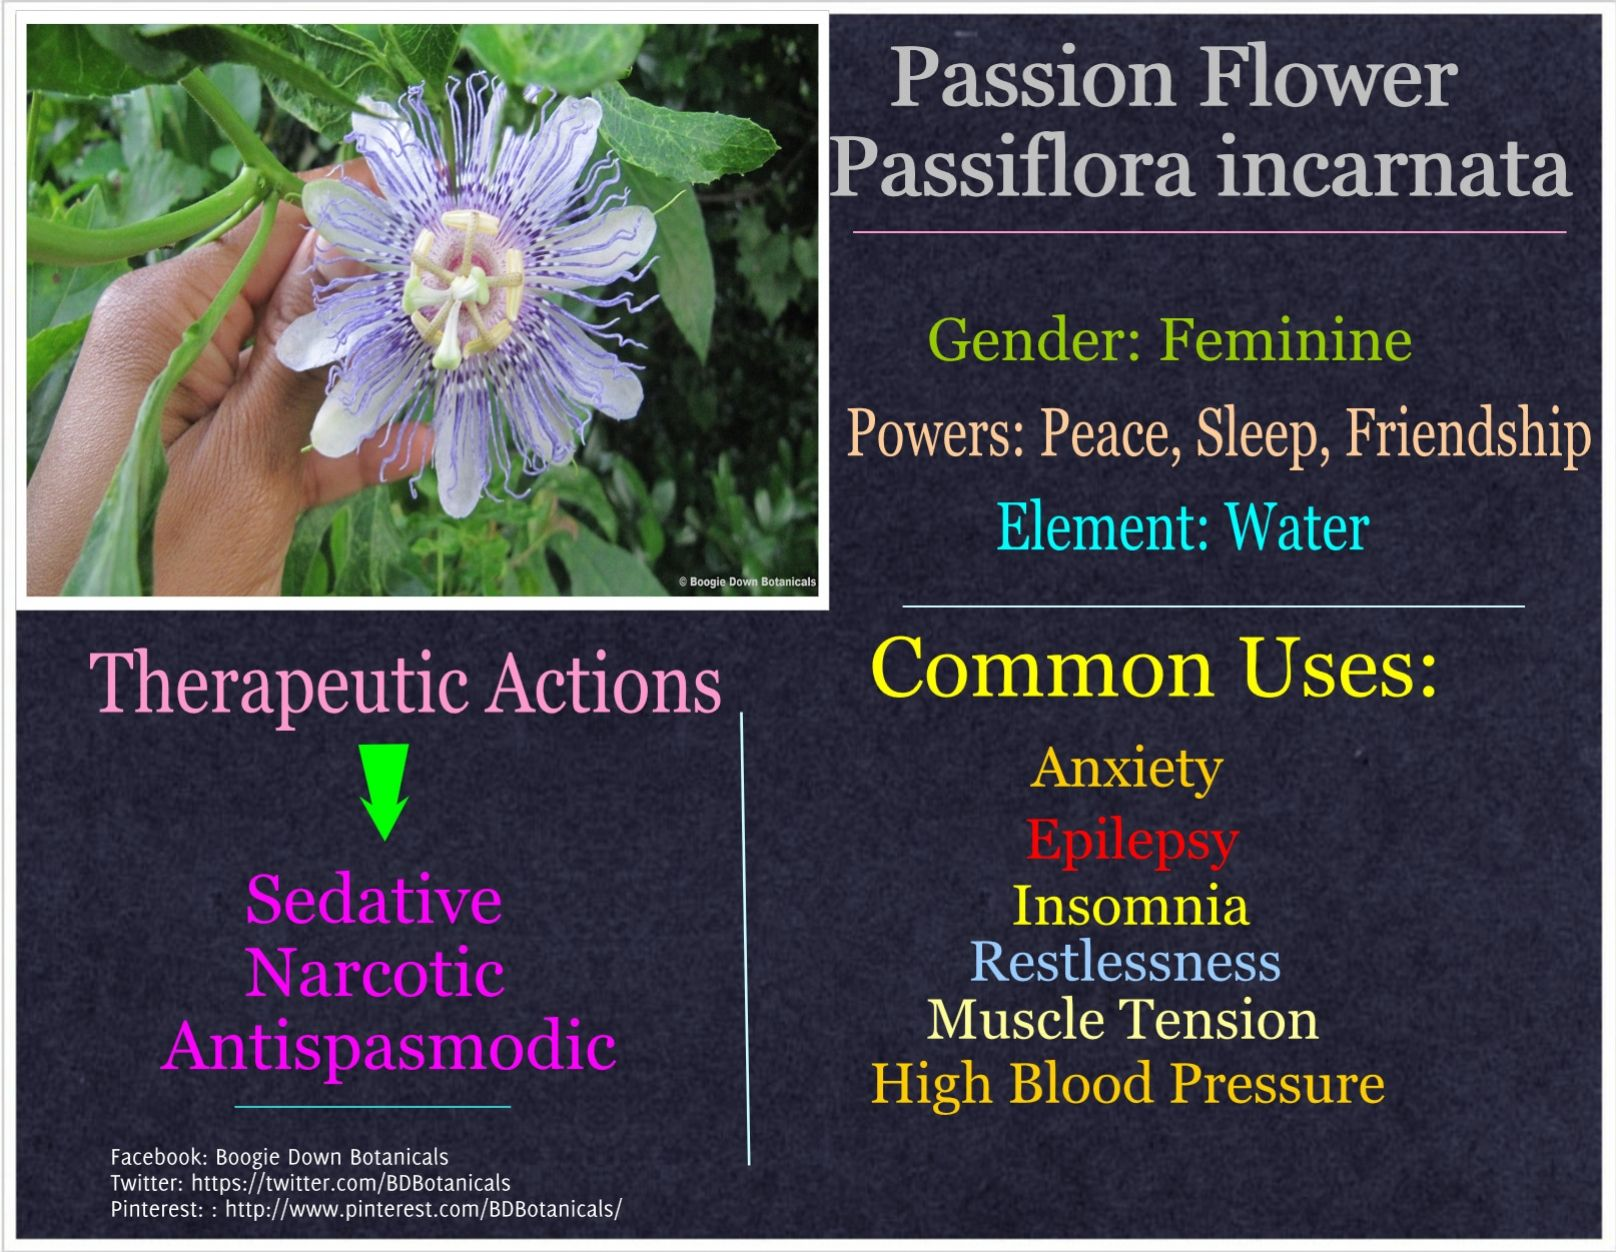 Passion Flower The Anti Stress Remedy For More Check Out Http On Fb Me 1dtc9kc Passion Flower Feminine Power Anti Stress